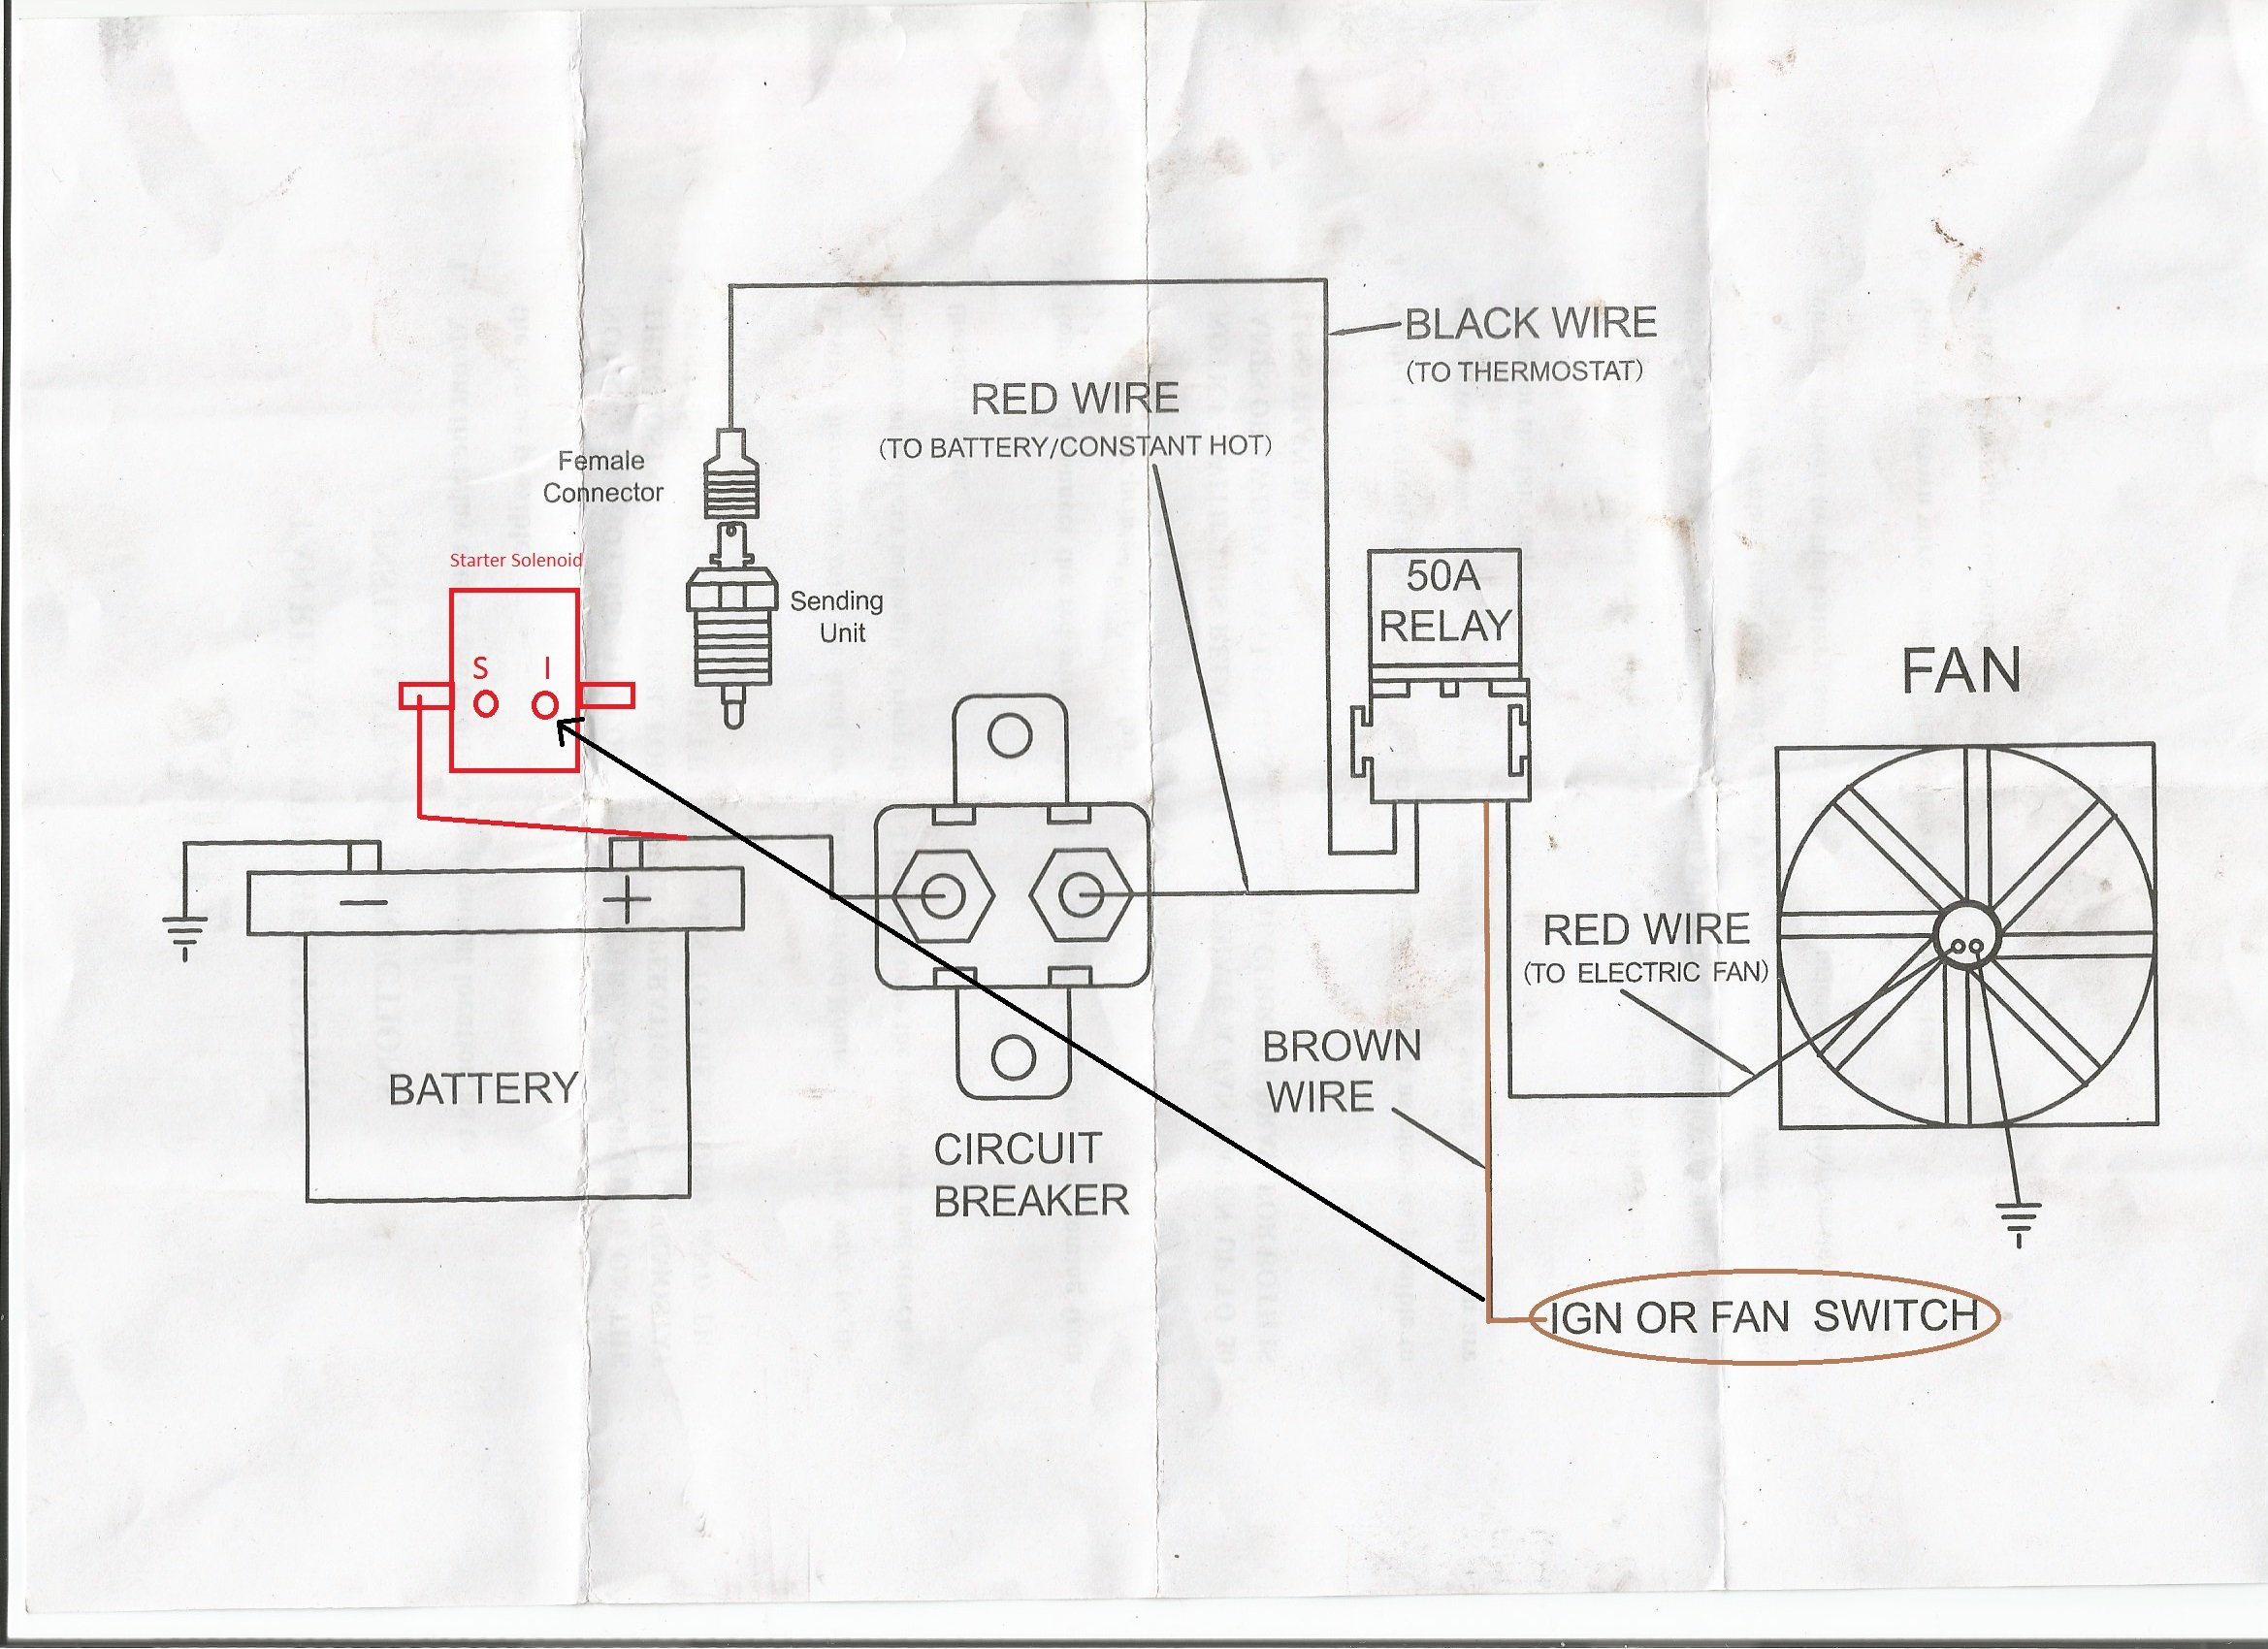 fan relay wiring diagram i installed my electric fan relay kit but